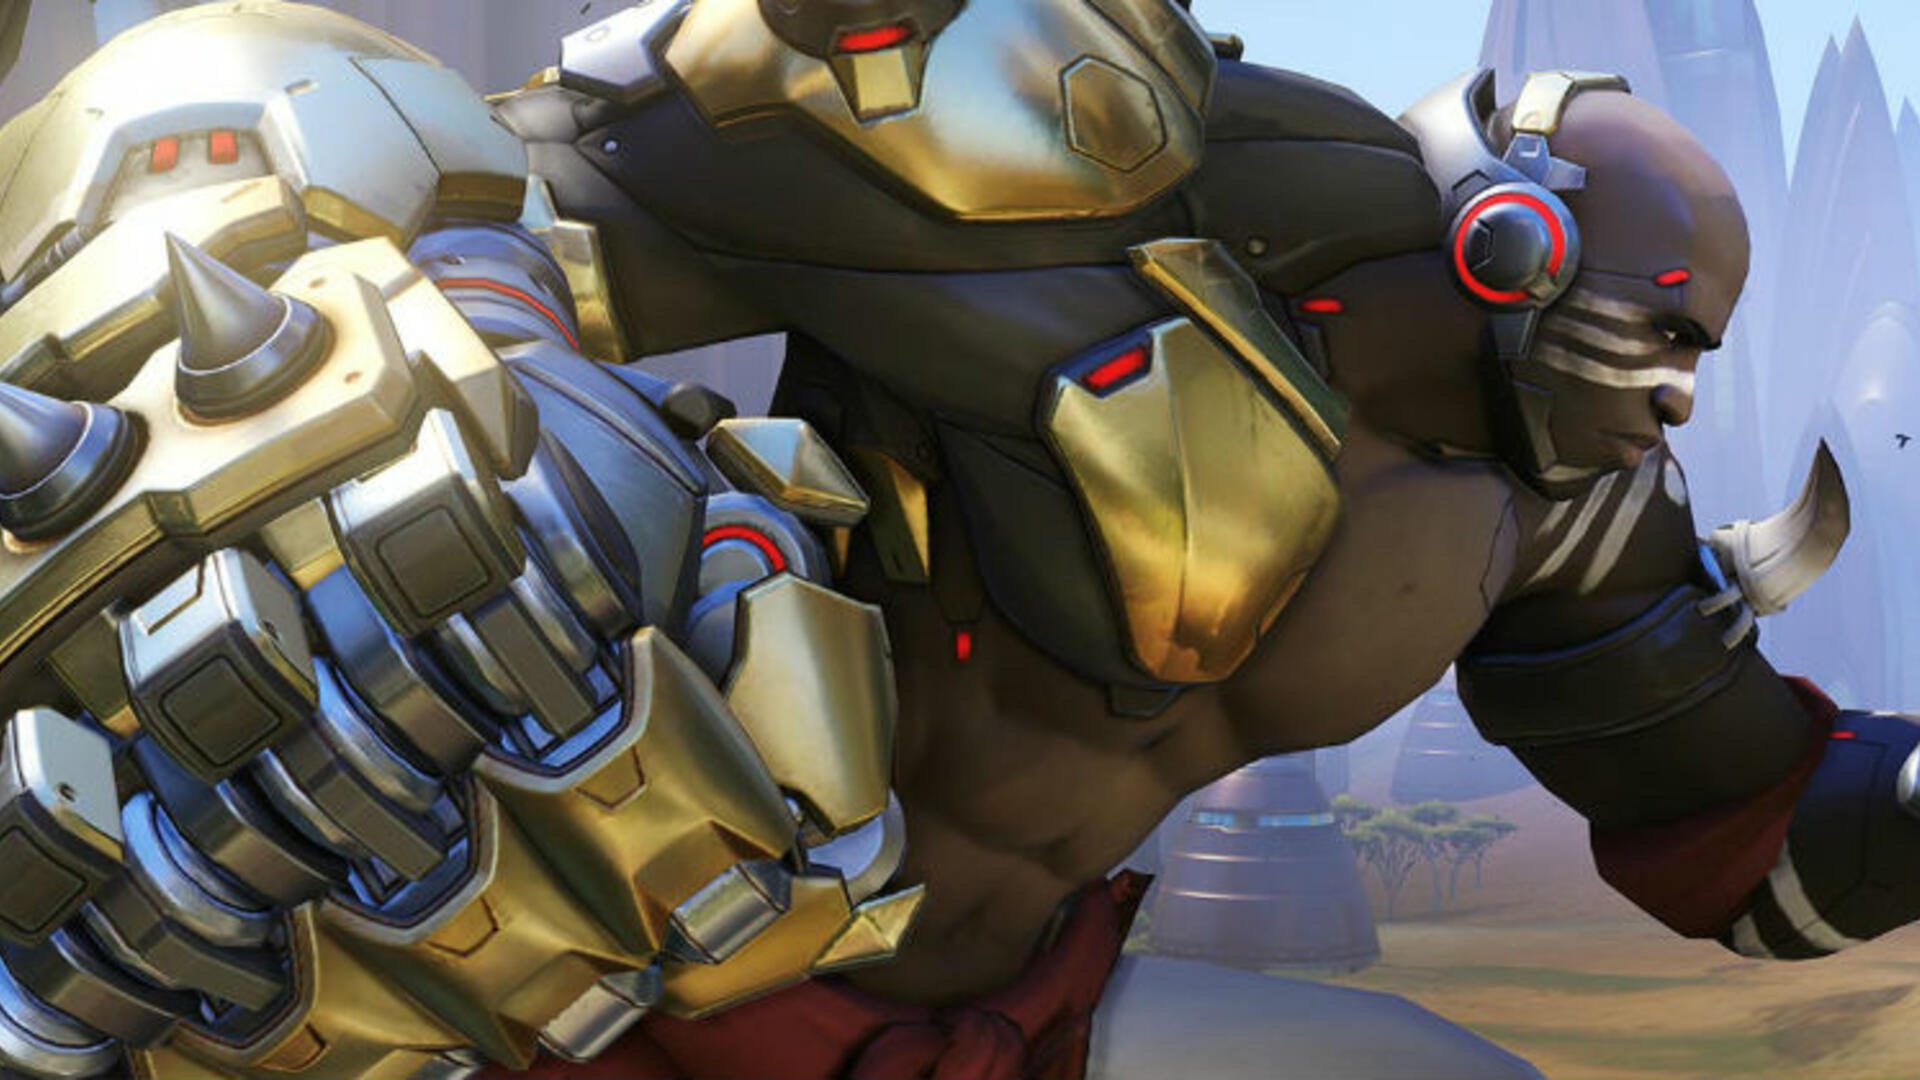 Overwatch Fans are Debating Doomfist's Philosophy About Conflict